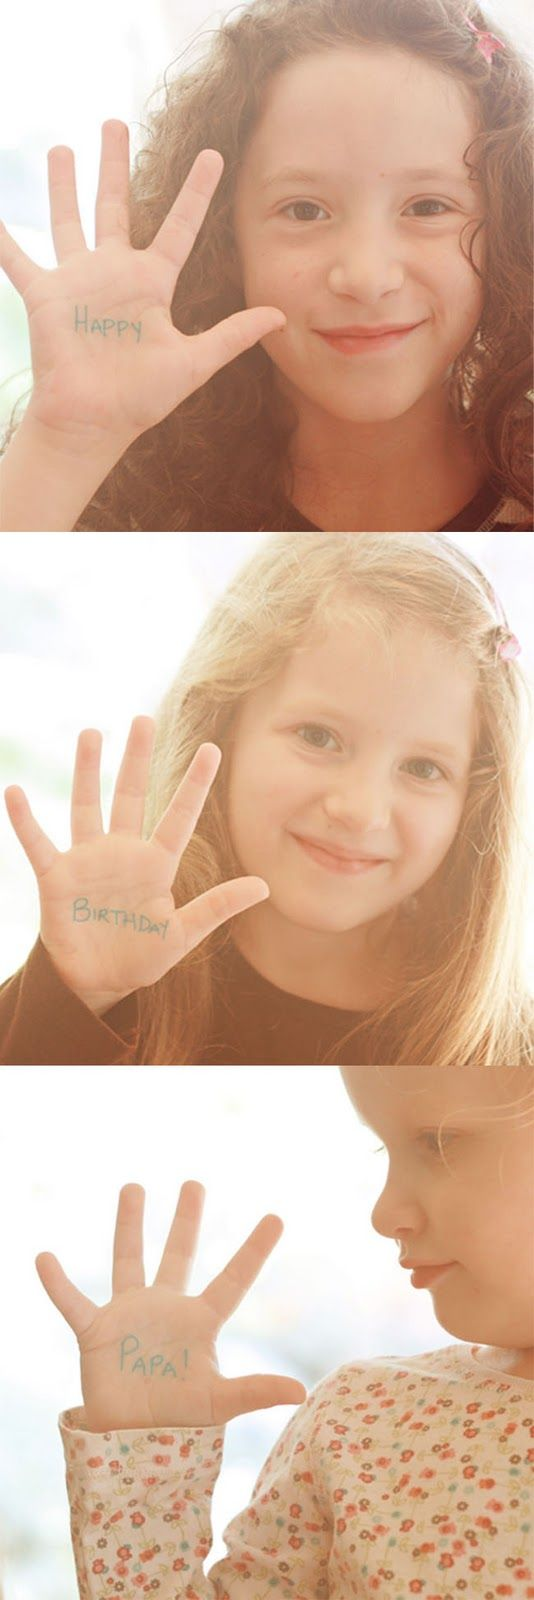 Cute!  Love this idea of writing the happy birthday message on their hands.